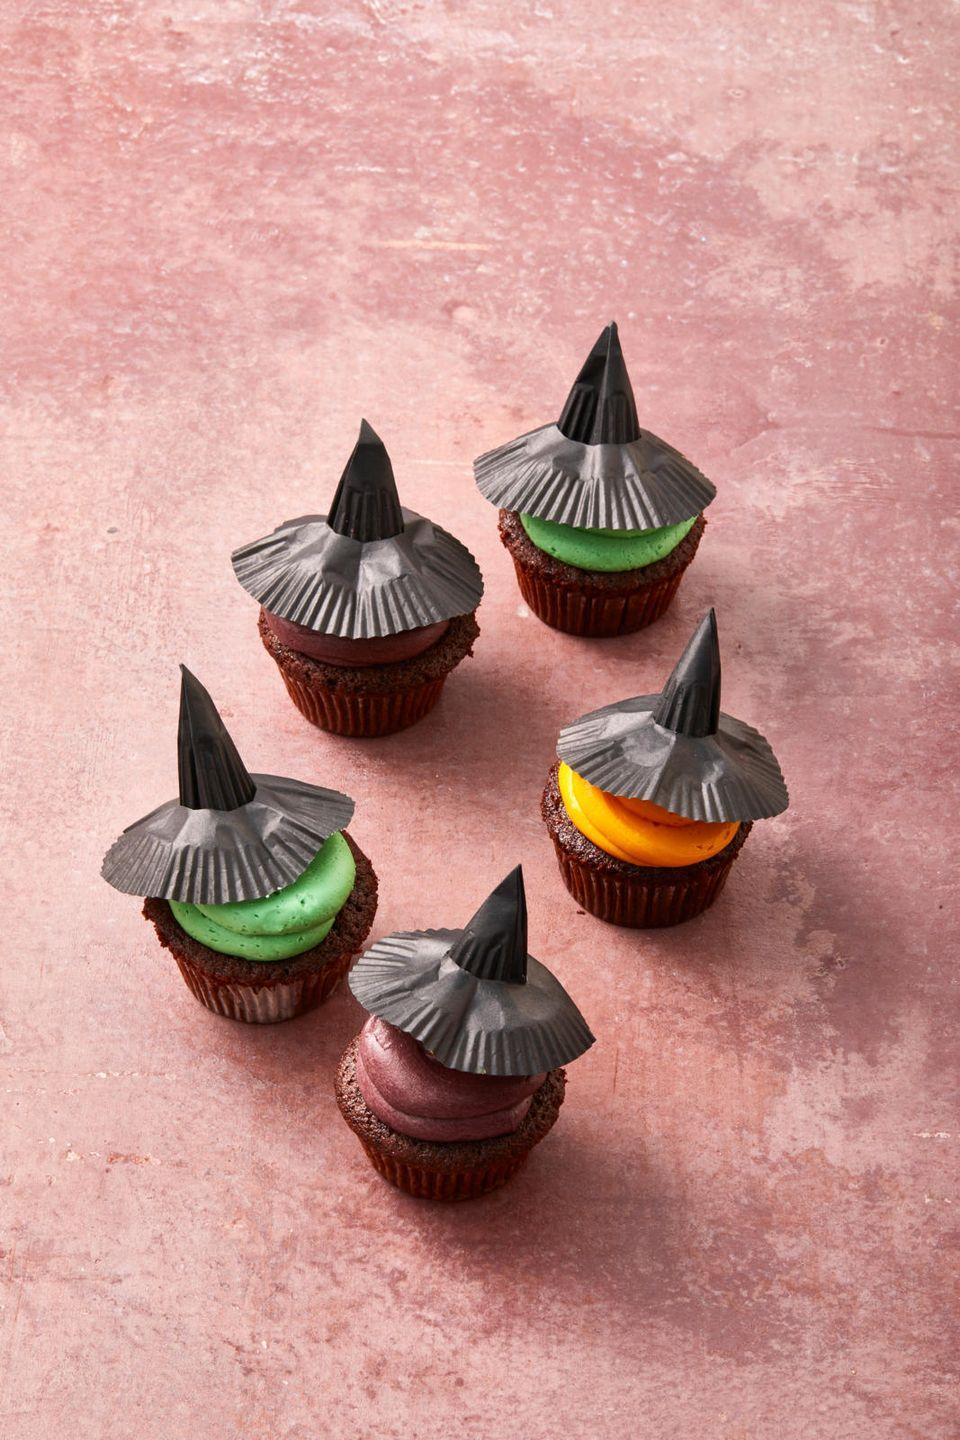 """<p>Hat's off to these witchy Halloween <a href=""""https://www.goodhousekeeping.com/food-recipes/a28566002/chocolate-cupcakes-recipe/"""" rel=""""nofollow noopener"""" target=""""_blank"""" data-ylk=""""slk:chocolate cupcakes"""" class=""""link rapid-noclick-resp"""">chocolate cupcakes</a> topped with buttercream frosting and crafty cupcake liners.</p><p><em><a href=""""https://www.goodhousekeeping.com/food-recipes/dessert/a33460086/witch-cupcakes-recipe/"""" rel=""""nofollow noopener"""" target=""""_blank"""" data-ylk=""""slk:Get the recipe for Witch Cupcakes »"""" class=""""link rapid-noclick-resp"""">Get the recipe for Witch Cupcakes »</a></em></p>"""